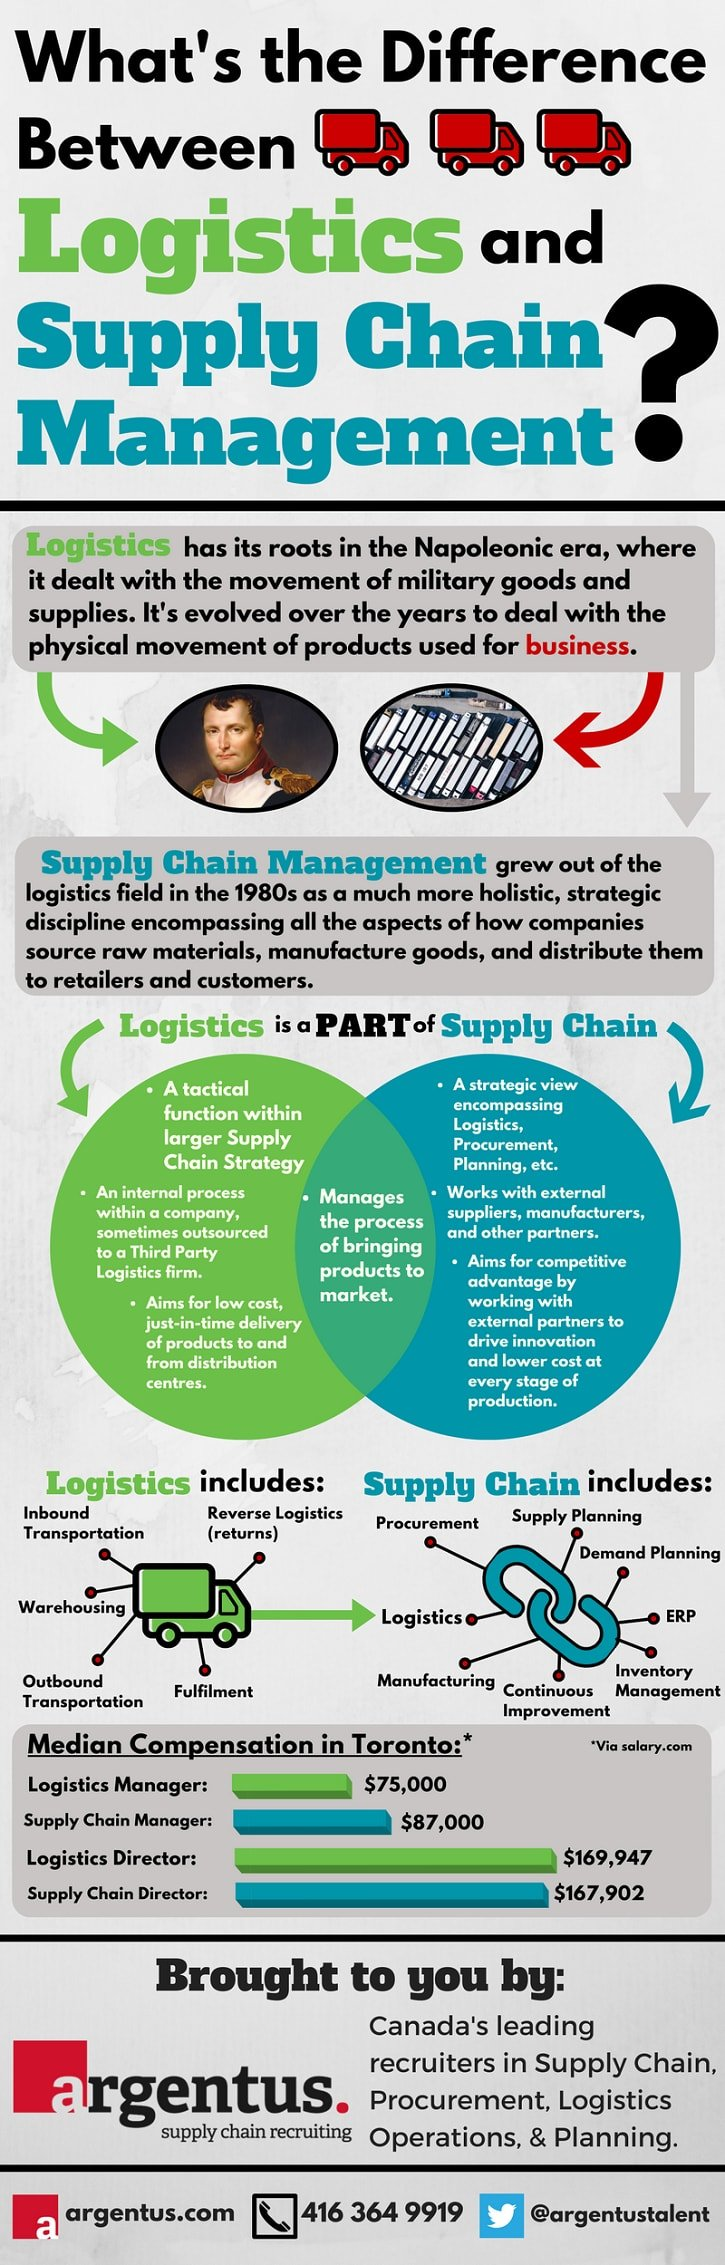 What is the 'Supply Chain' A supply chain is a network between a company and its suppliers to produce and distribute a specific product, and the supply chain represents the steps it takes to get the product or service to the customer.